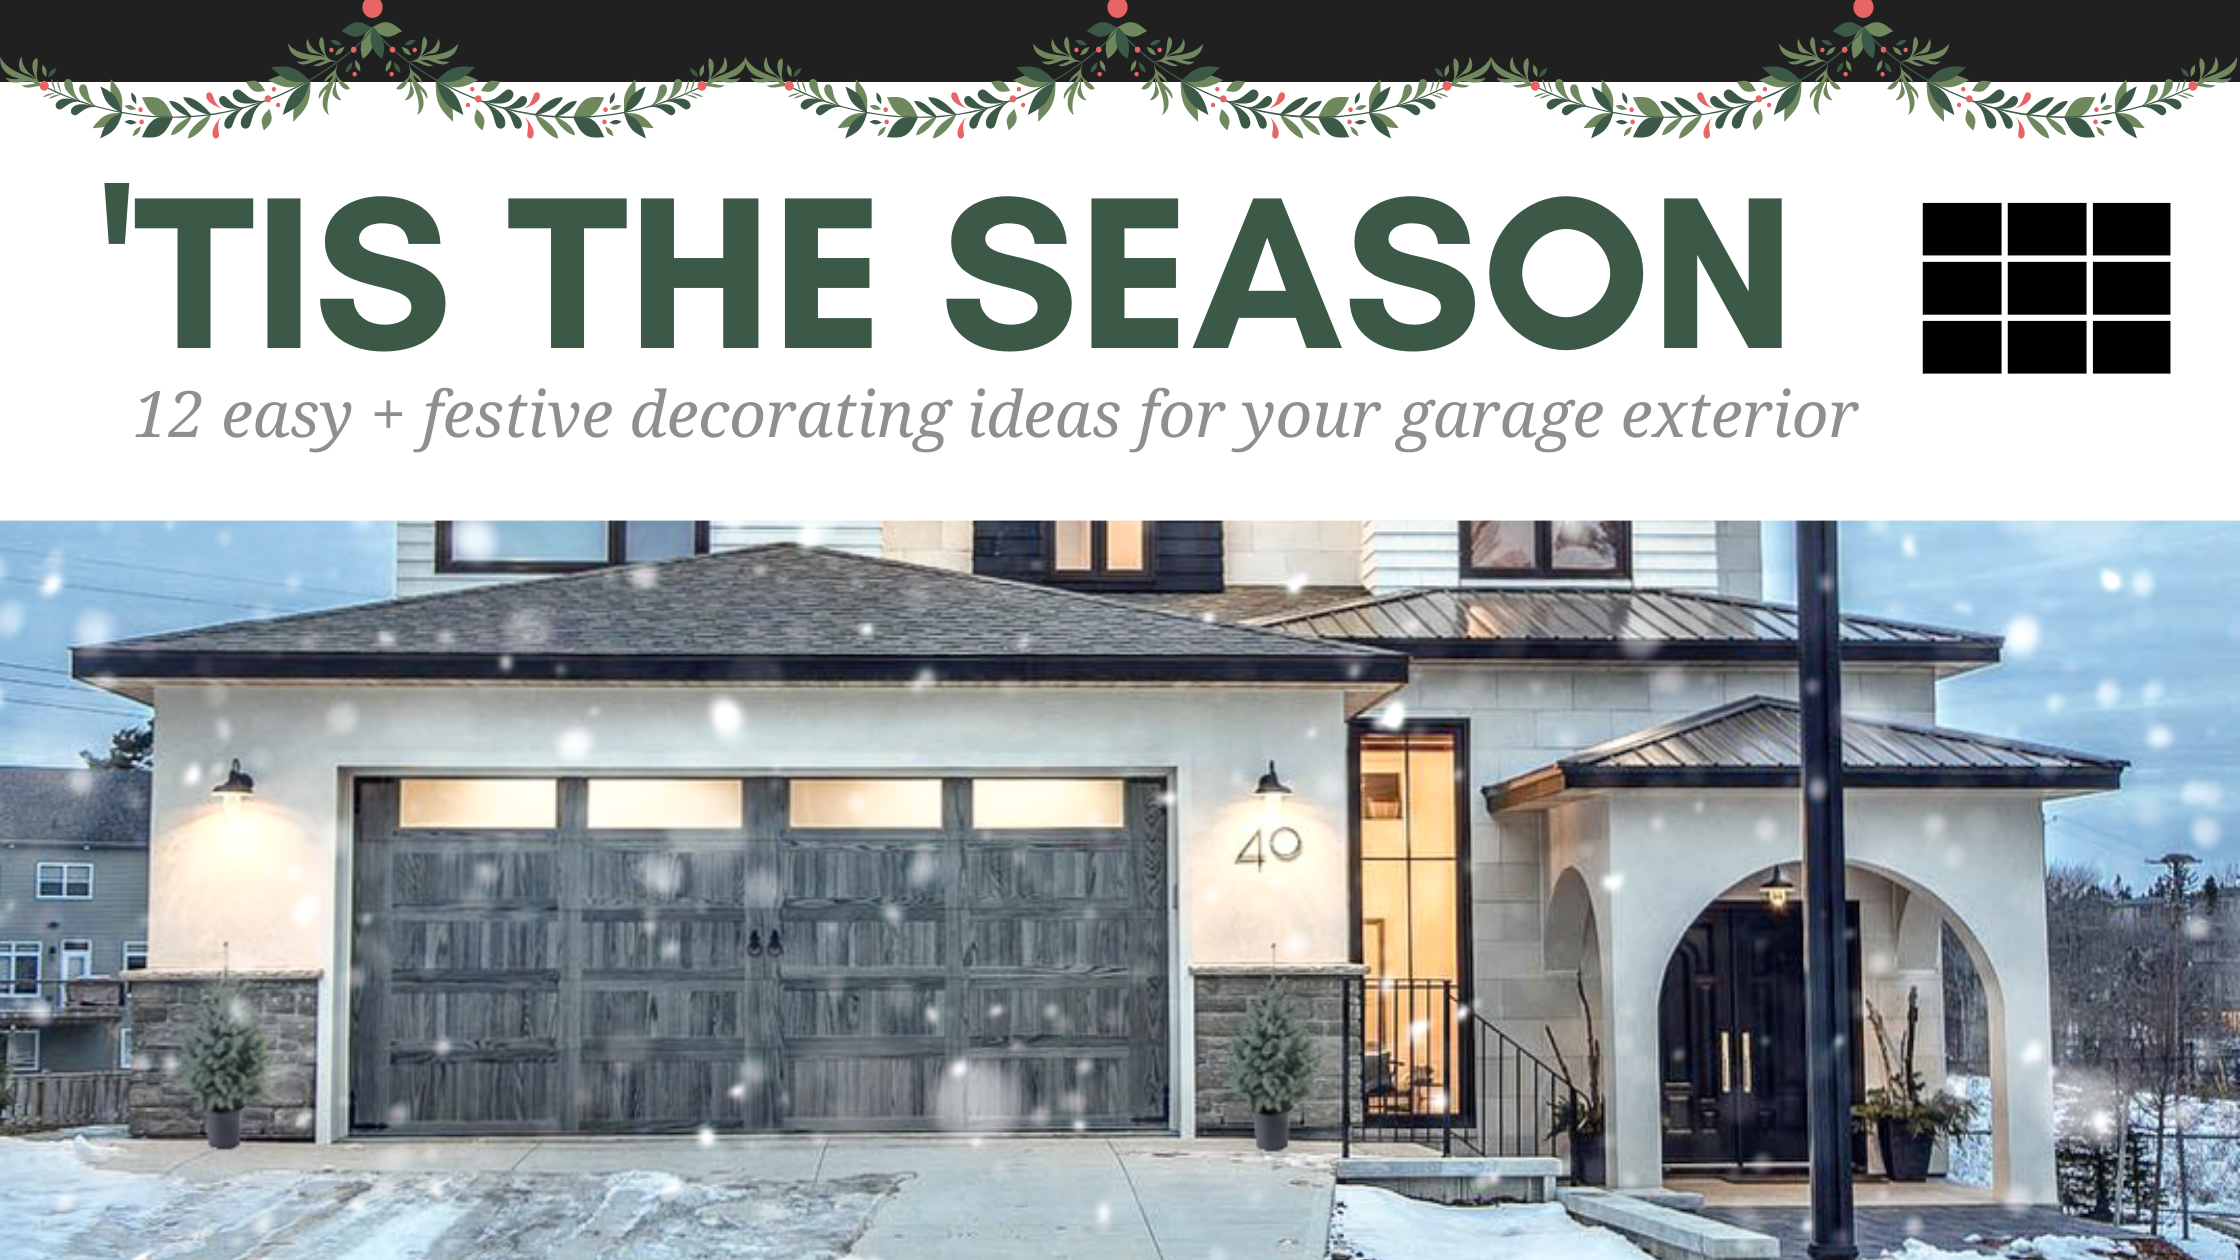 'Tis the Season: 12 Easy + Festive Decorating Ideas for Your Garage Exterior